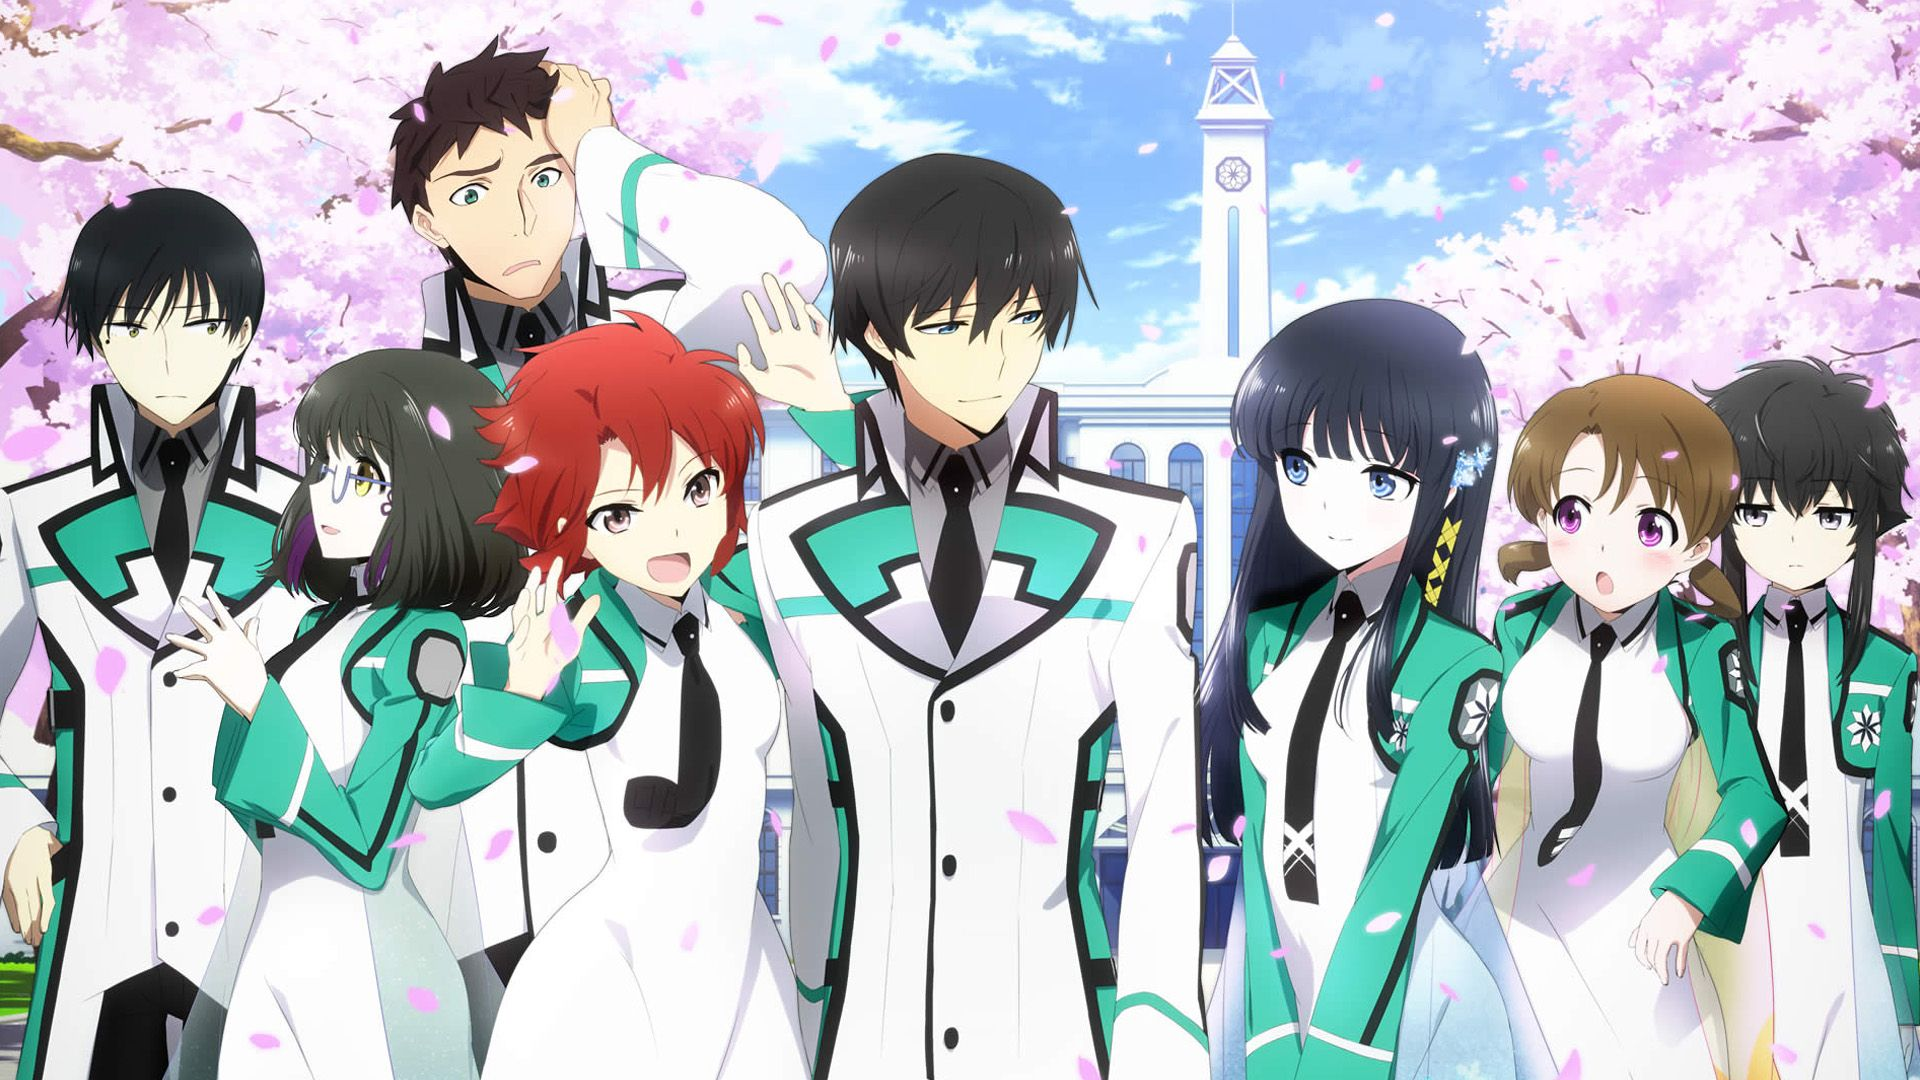 Eagleland Manga Review: Irregular at Magic High School